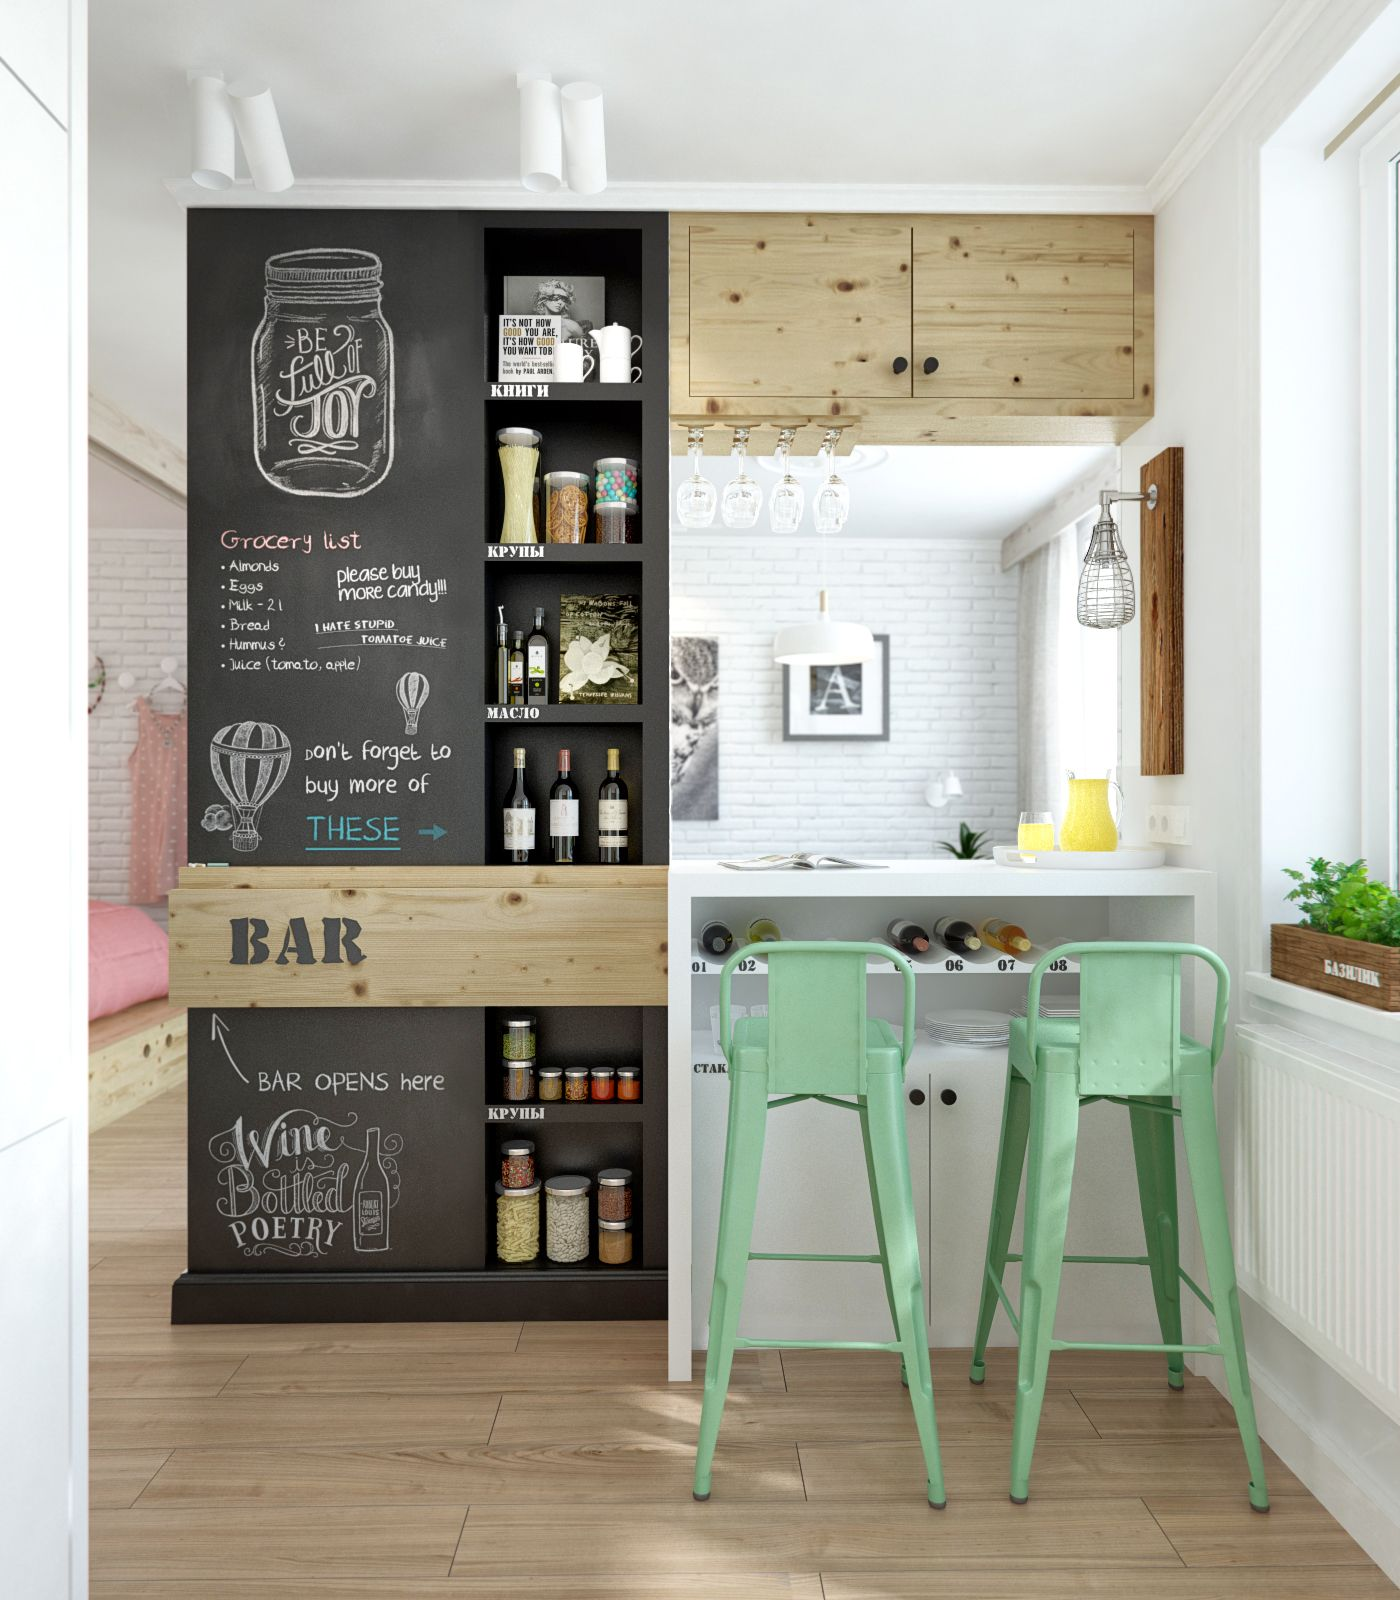 9-bar-home-design-with-small-ideas-and-high-green-chair-and-black-wooden-bottle-drink-storage